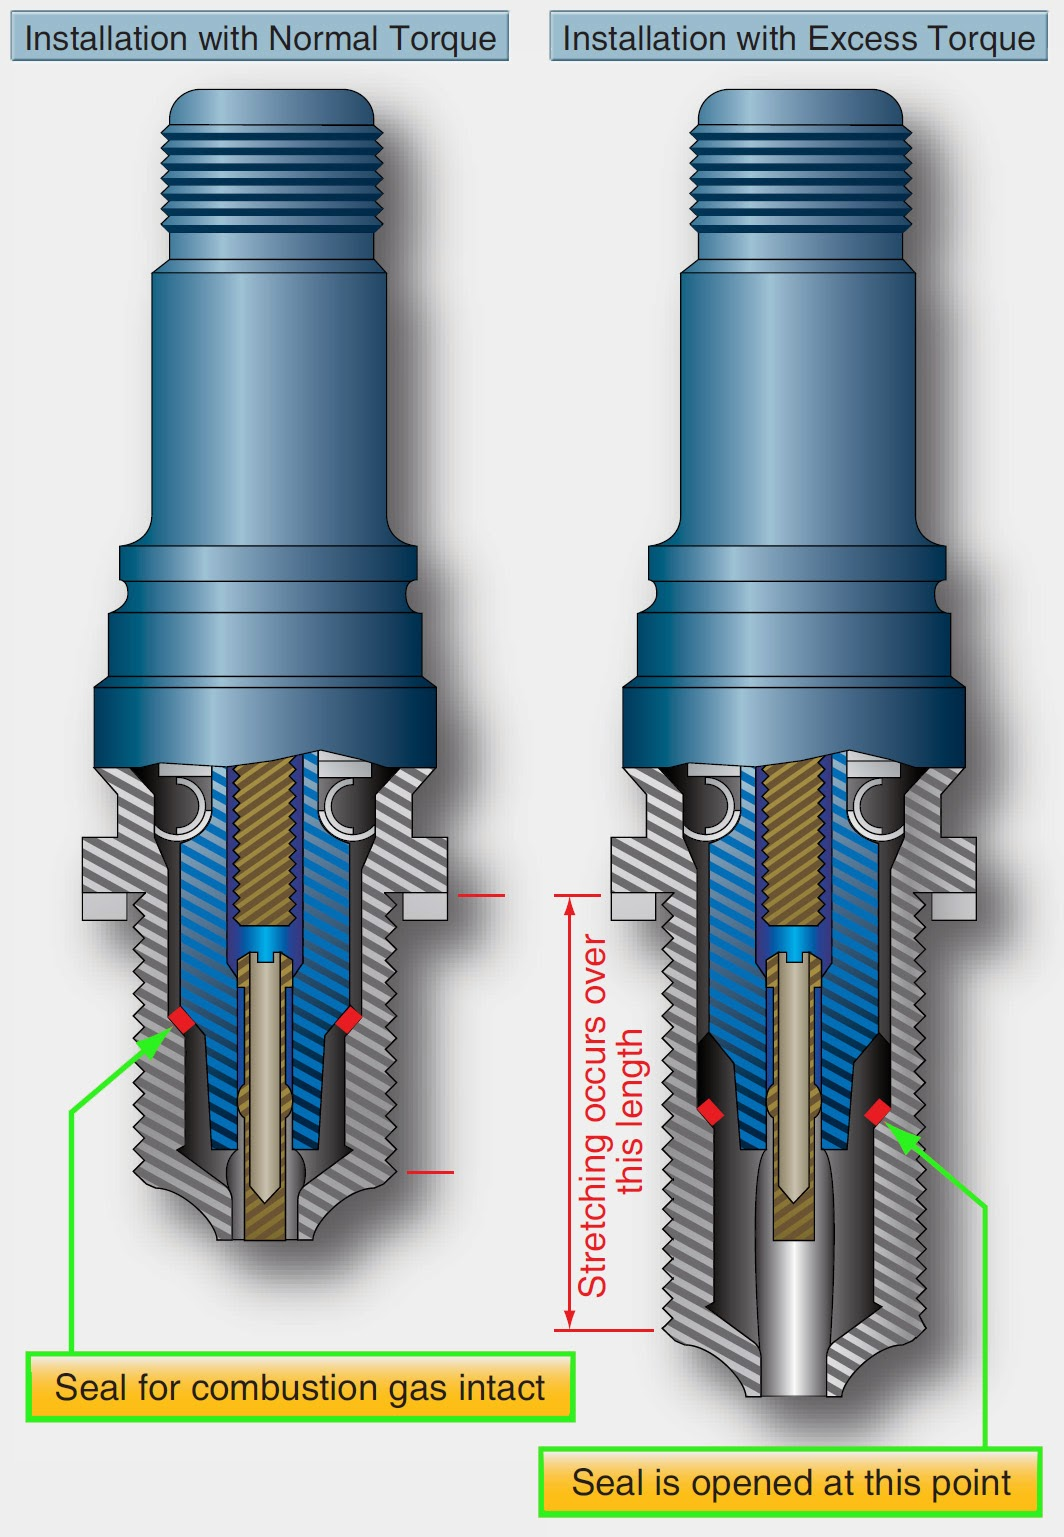 Aircraft systems: Spark Plug Inspection and Maintenance